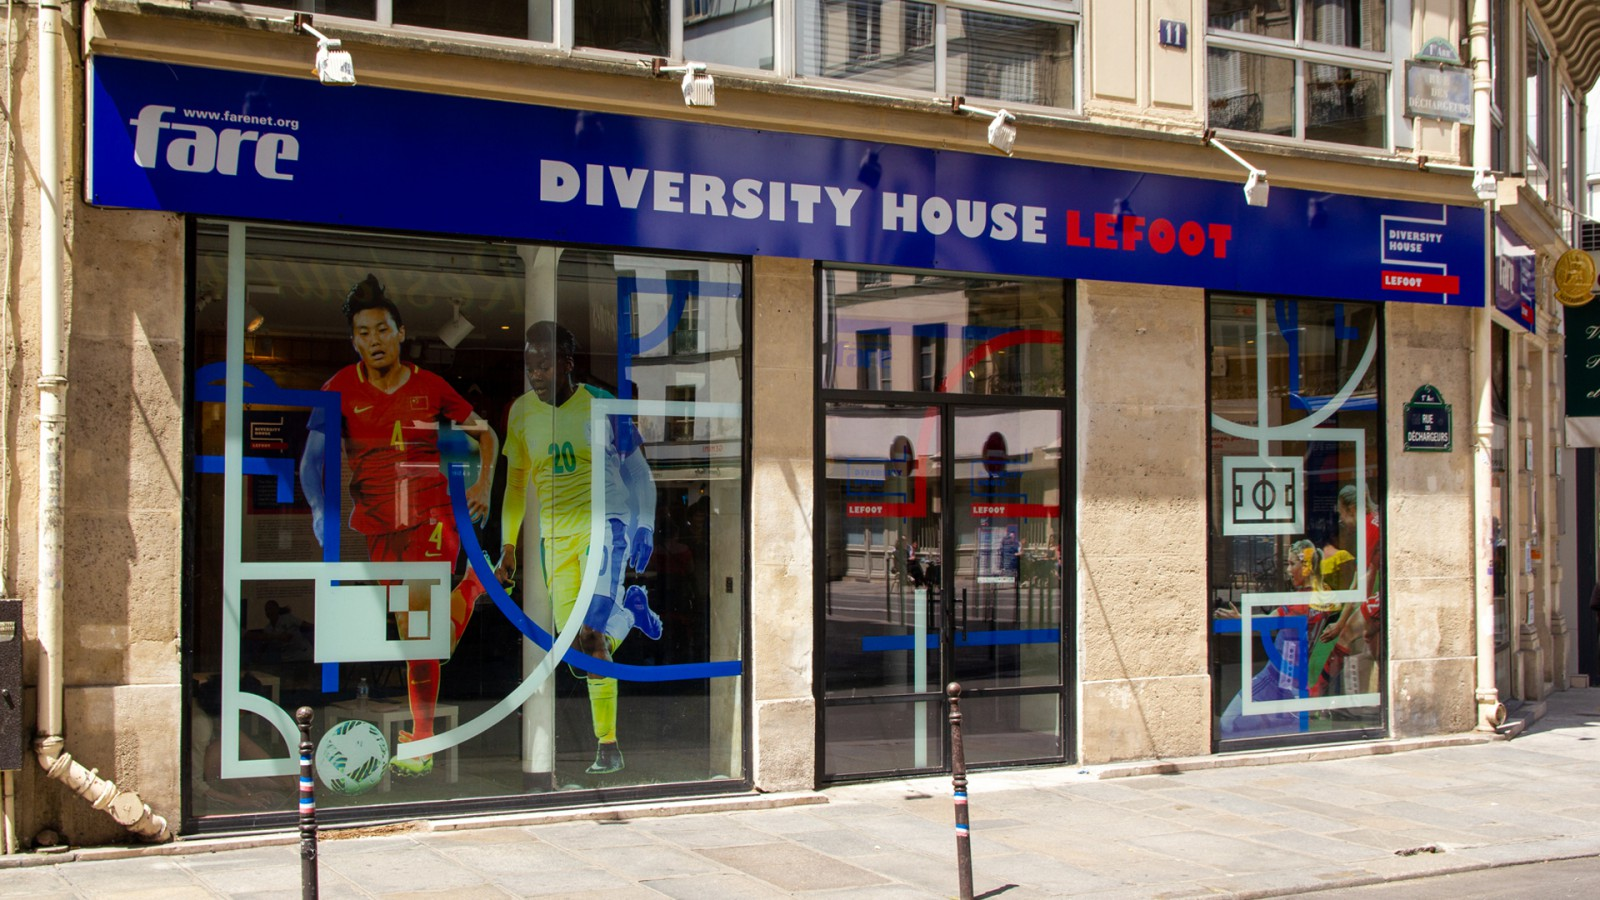 Gallery image for Diversity House - Paris 2019 project